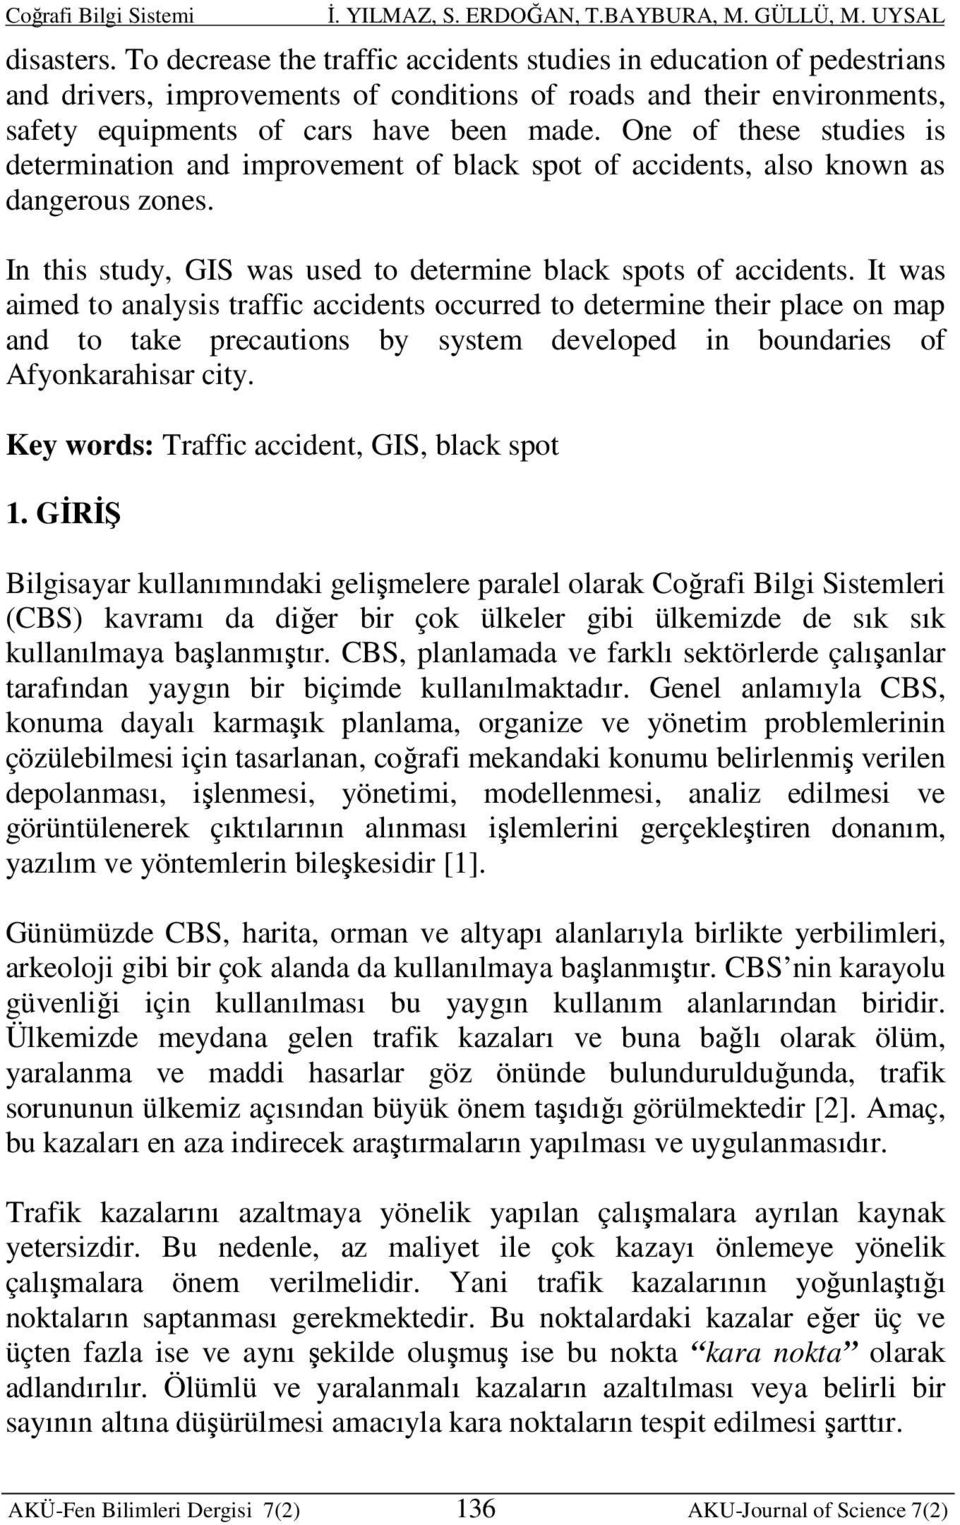 It was aimed to analysis traffic accidents occurred to determine their place on map and to take precautions by system developed in boundaries of Afyonkarahisar city.